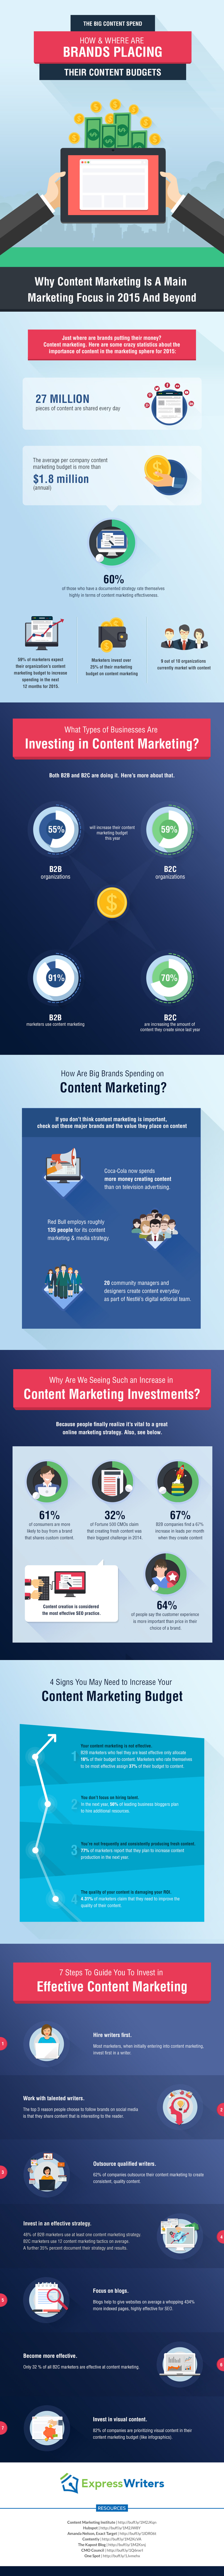 Content Budgets: Why Content Marketing Is A Main Marketing Focus in 2015 & Beyond - #infographic